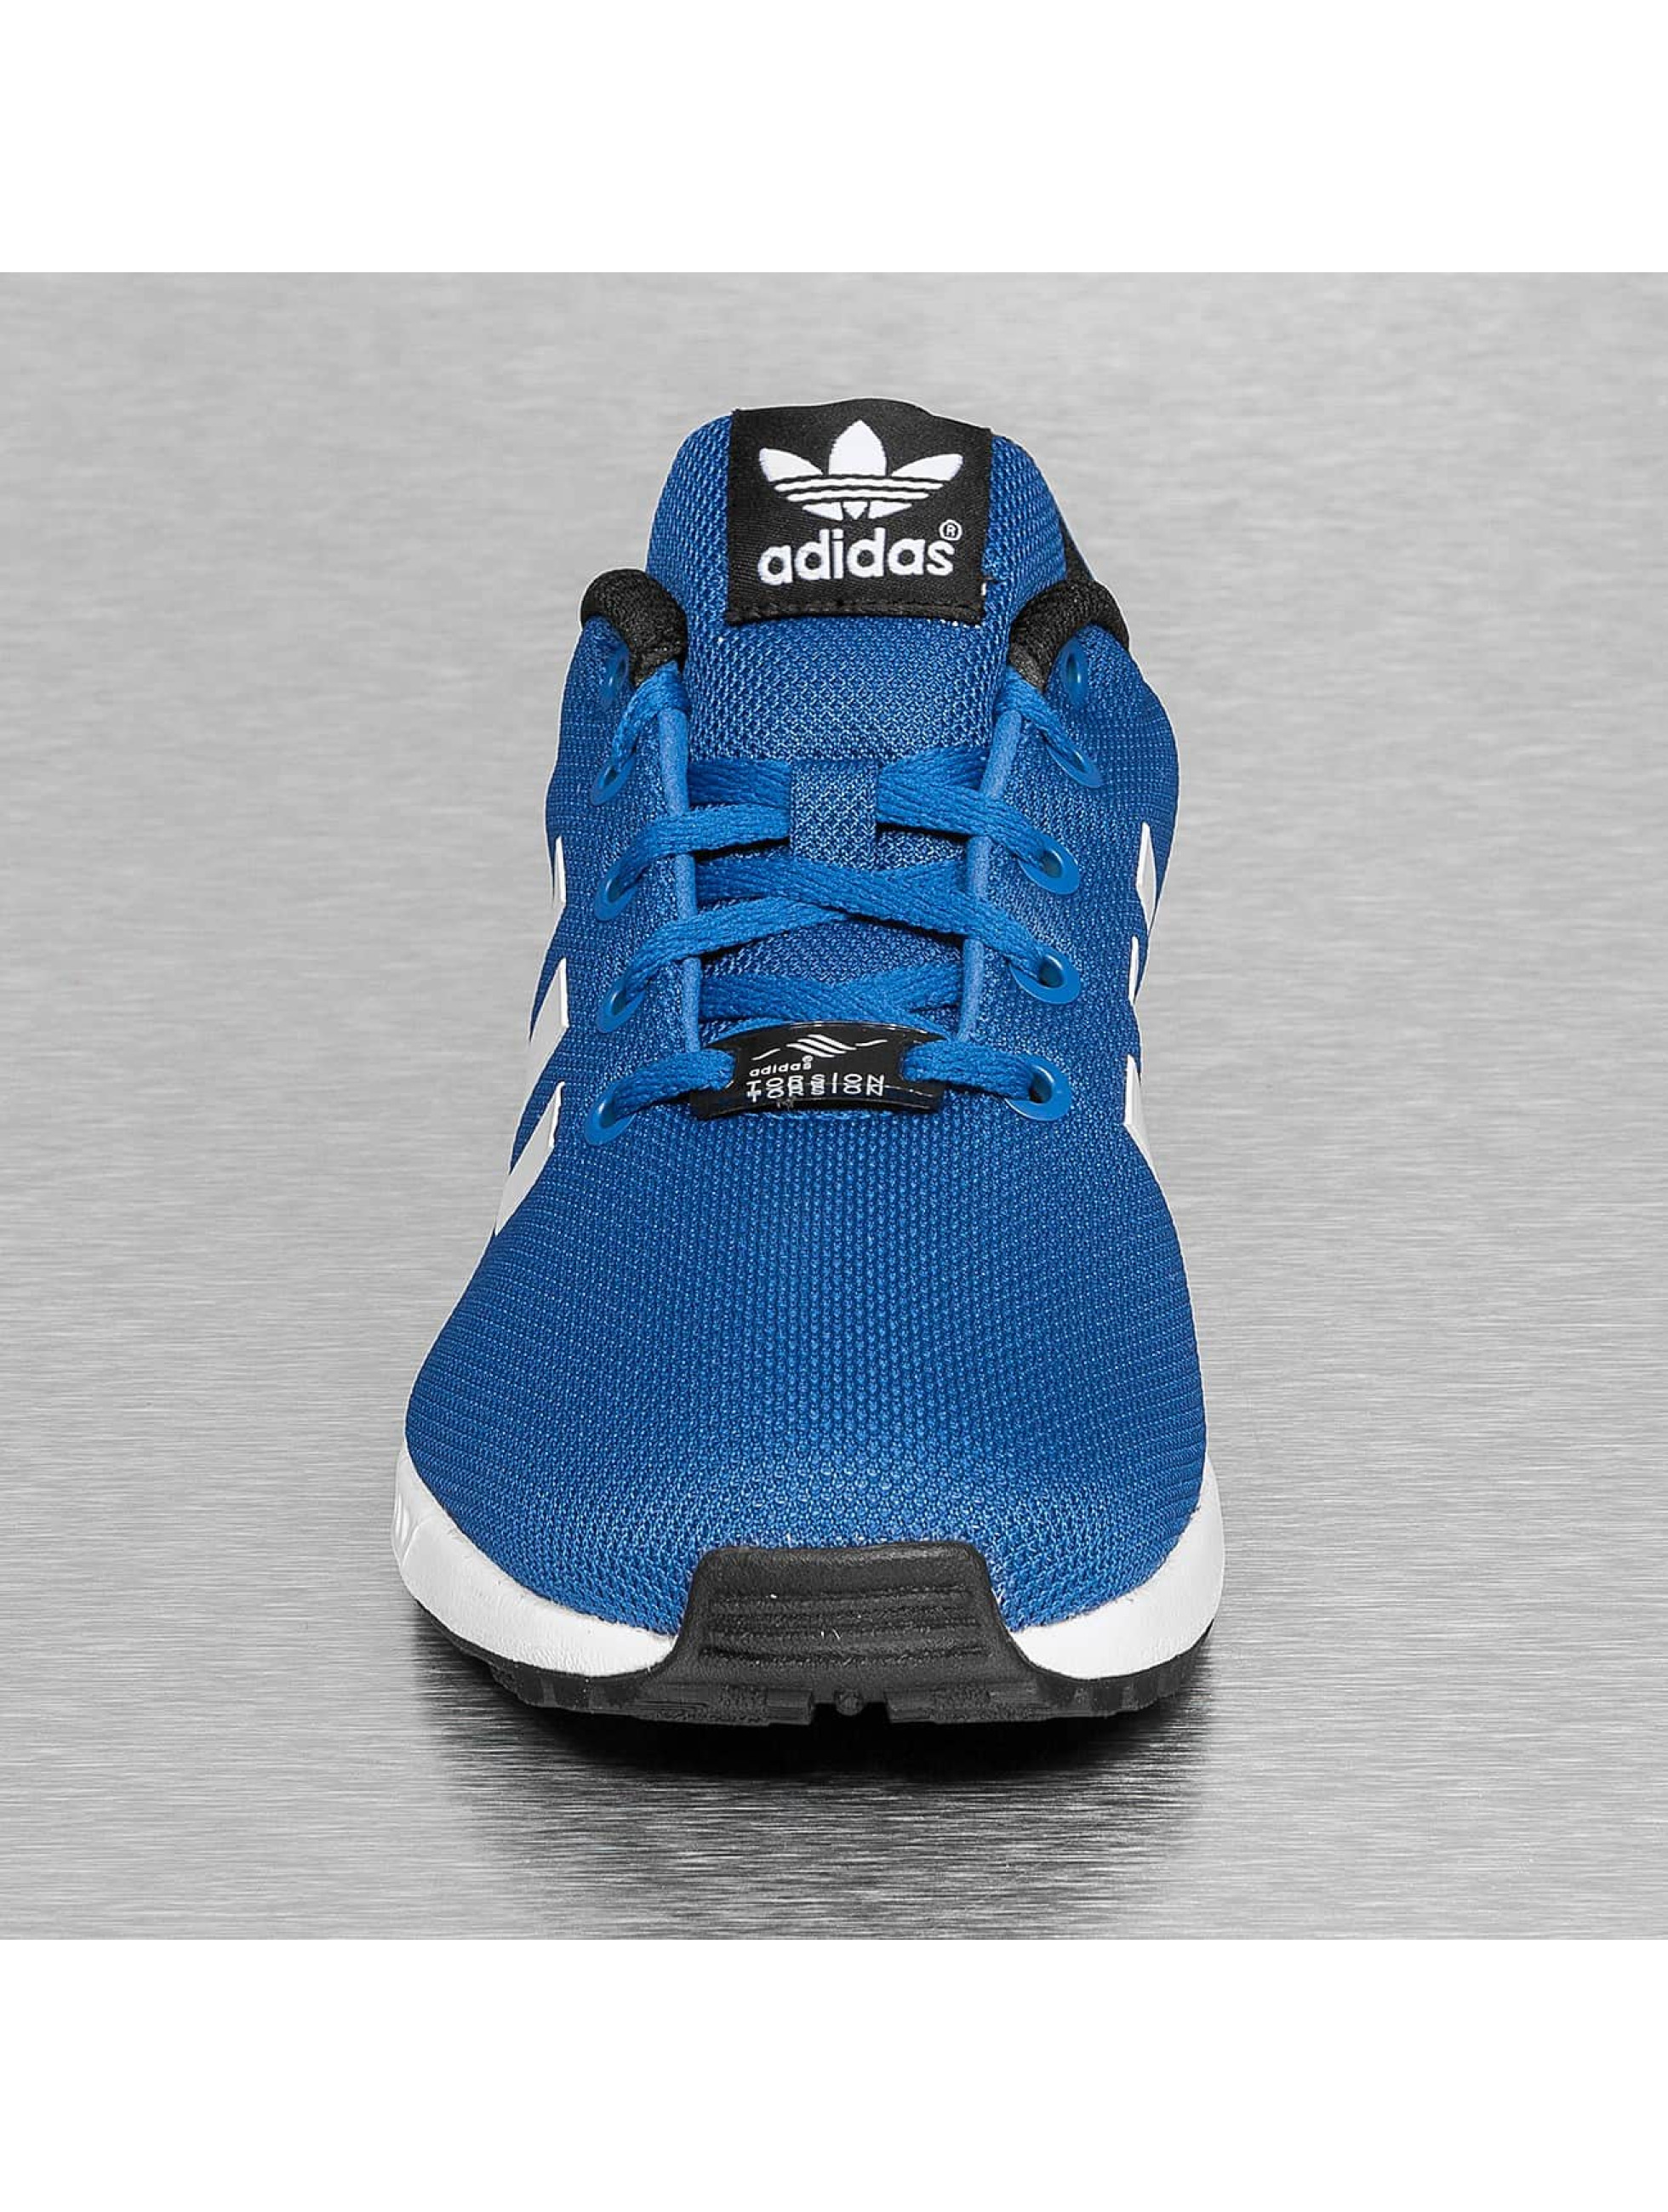 Adidas Sneakers Blauw